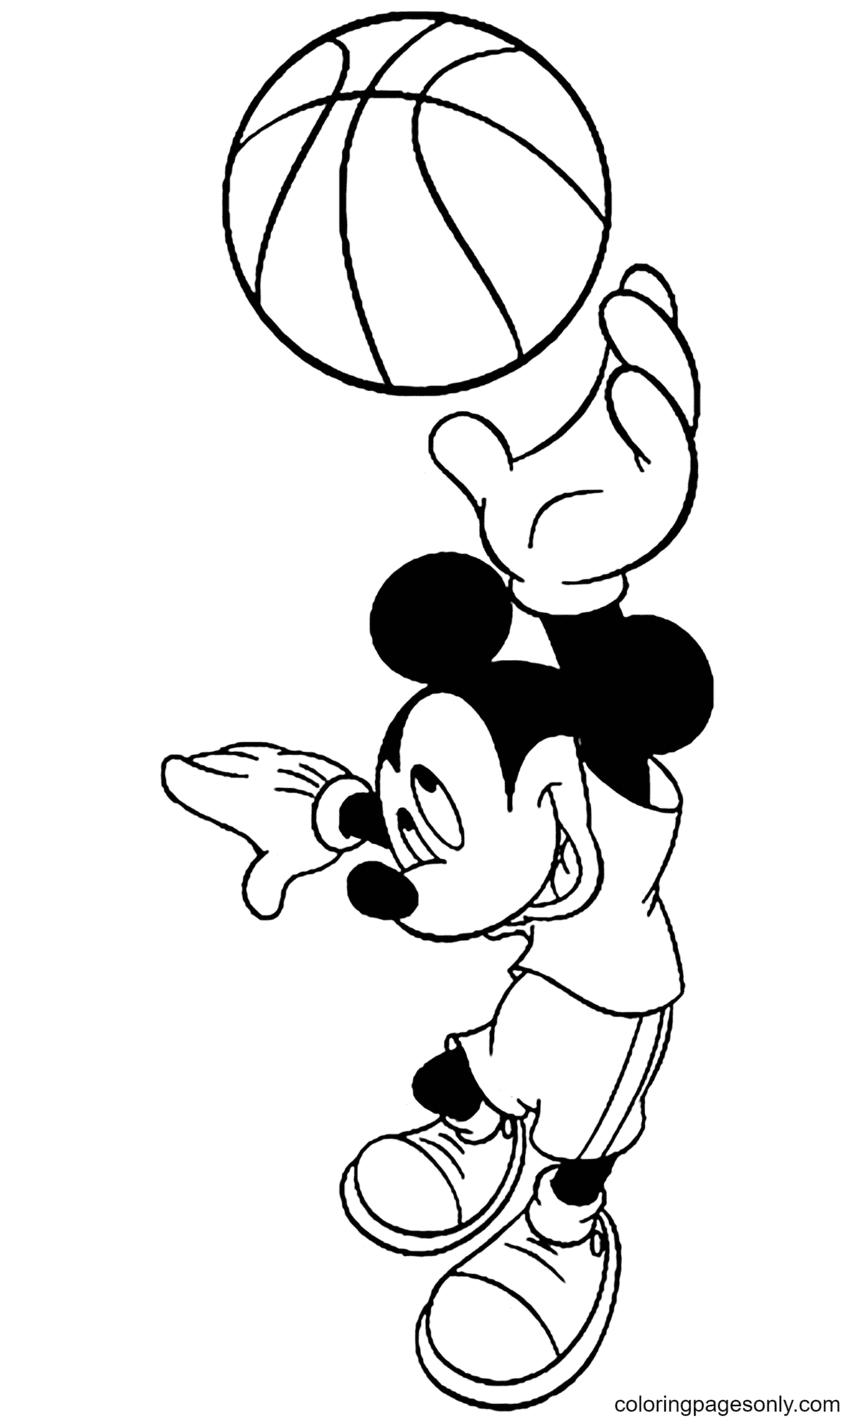 Mickey Playing Basketball Coloring Page